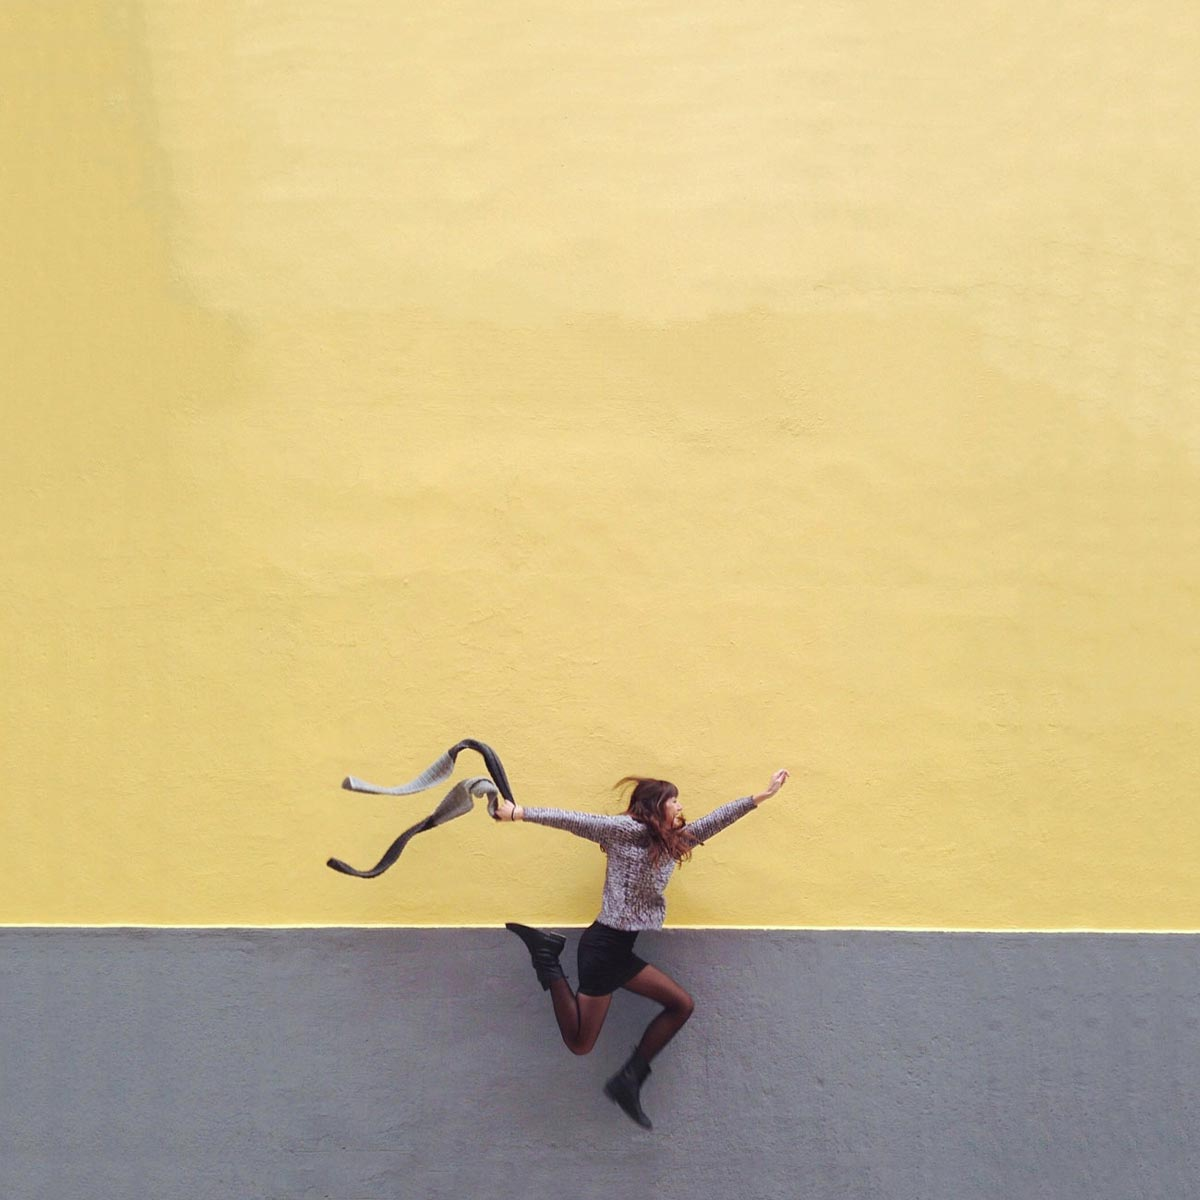 Photo by Daniel Rueda of woman jumping in front of yellow and gray backdrop